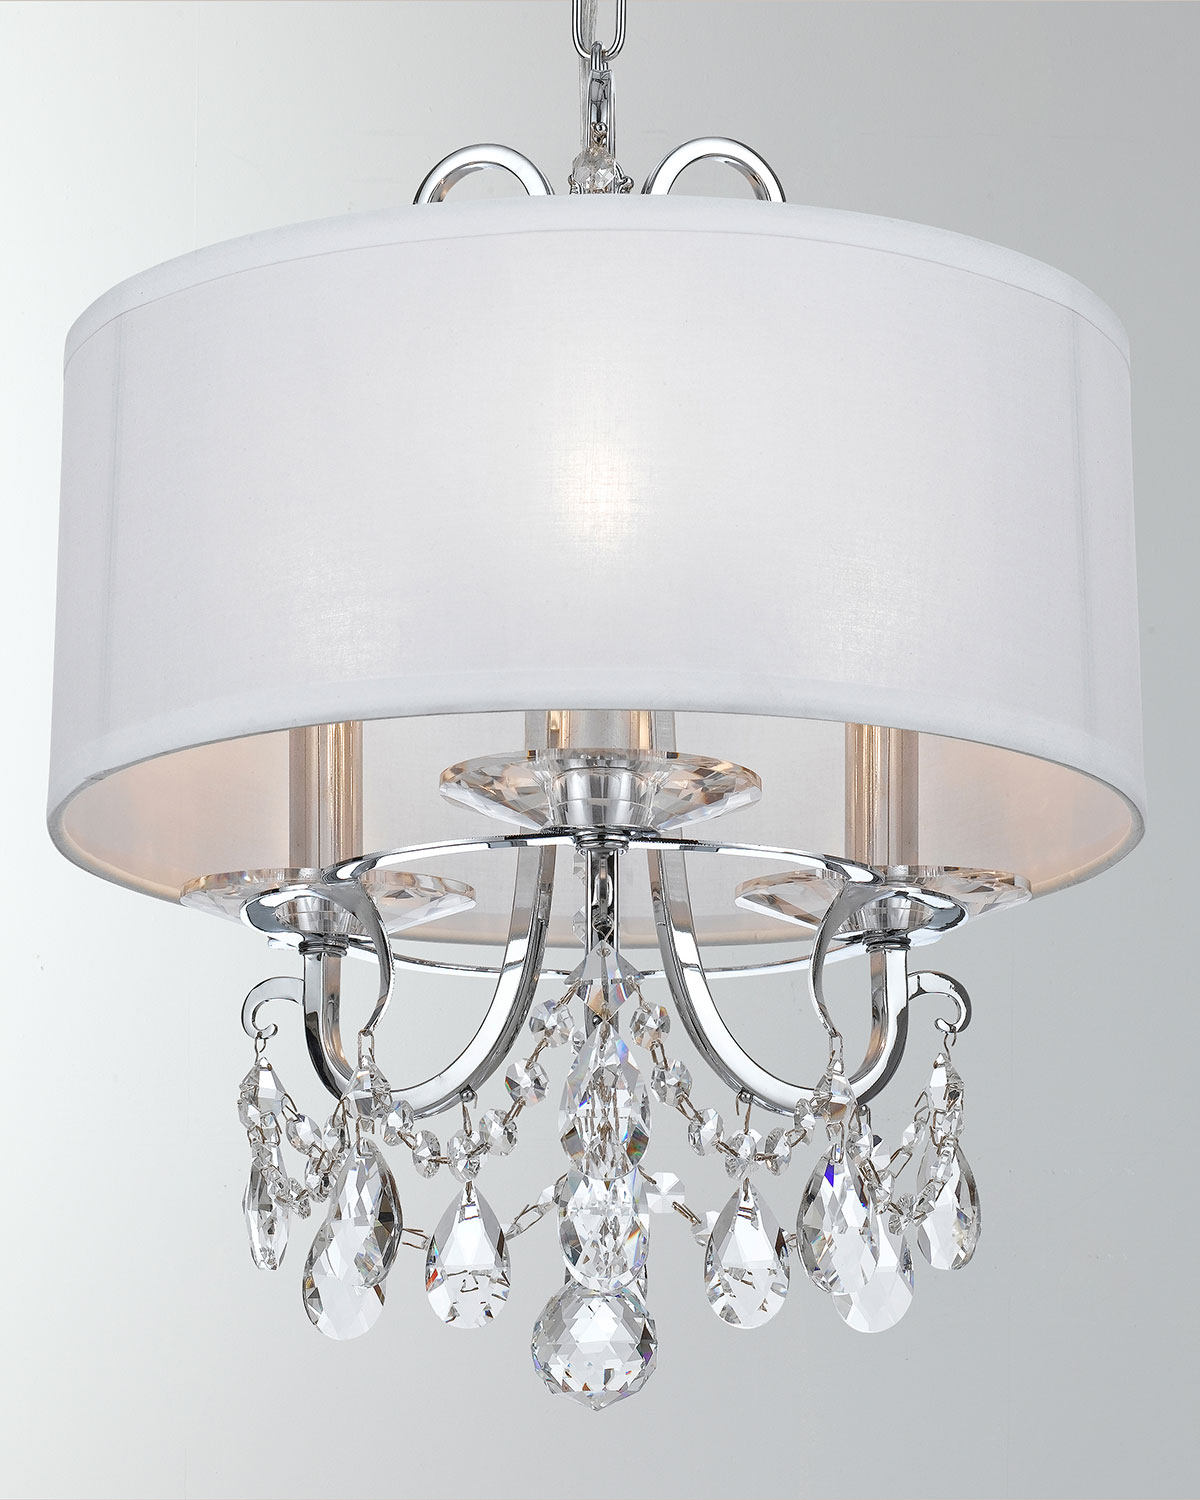 Most Recently Released Crystorama Othello 3 Light Clear Crystal Polished Chrome For Alverez 4 Light Drum Chandeliers (View 19 of 25)